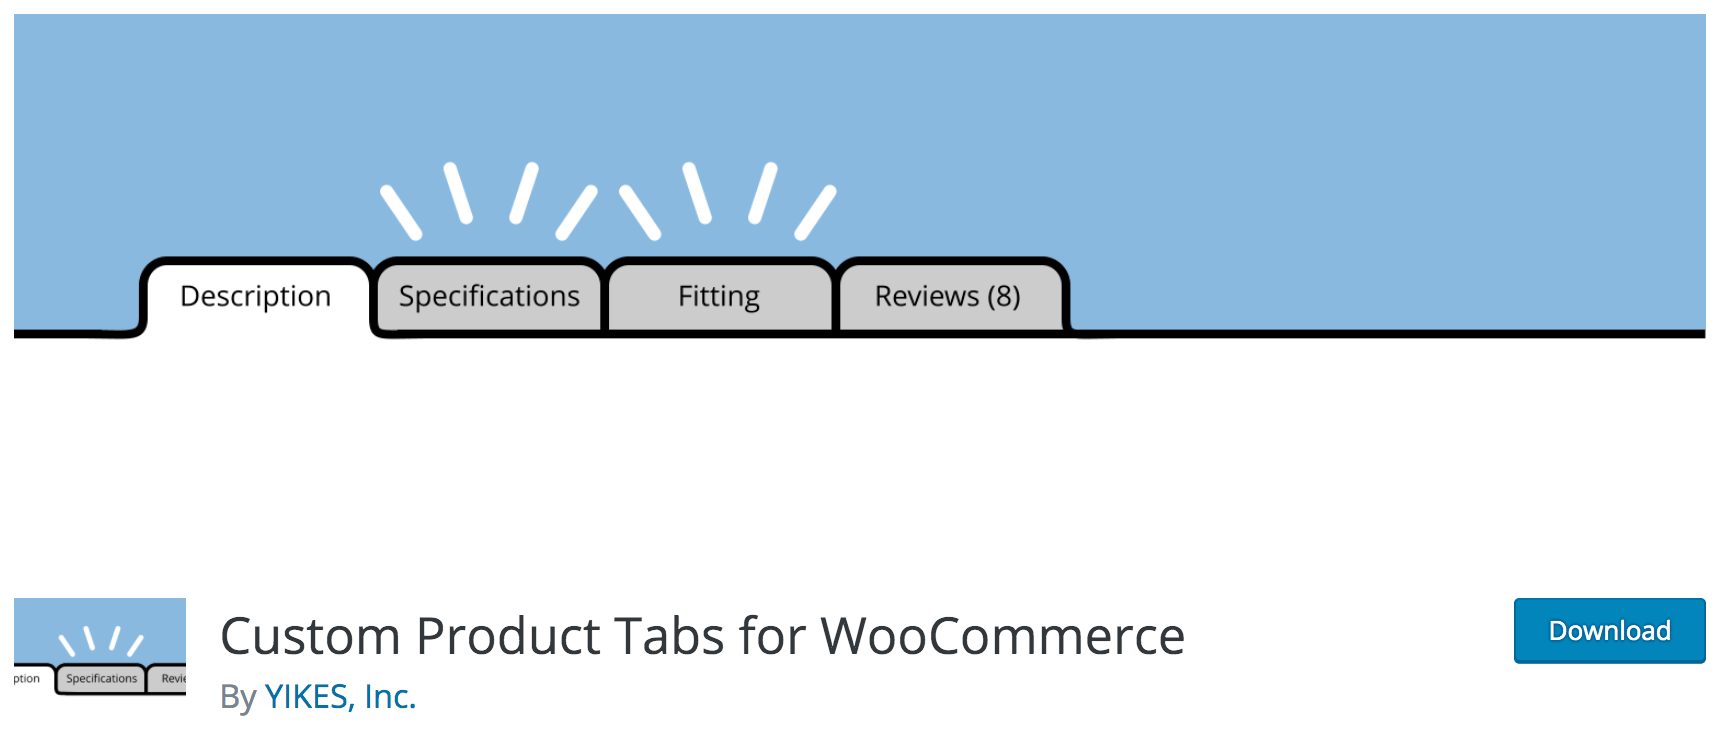 Custom Product Tabs for WooCommerce product page